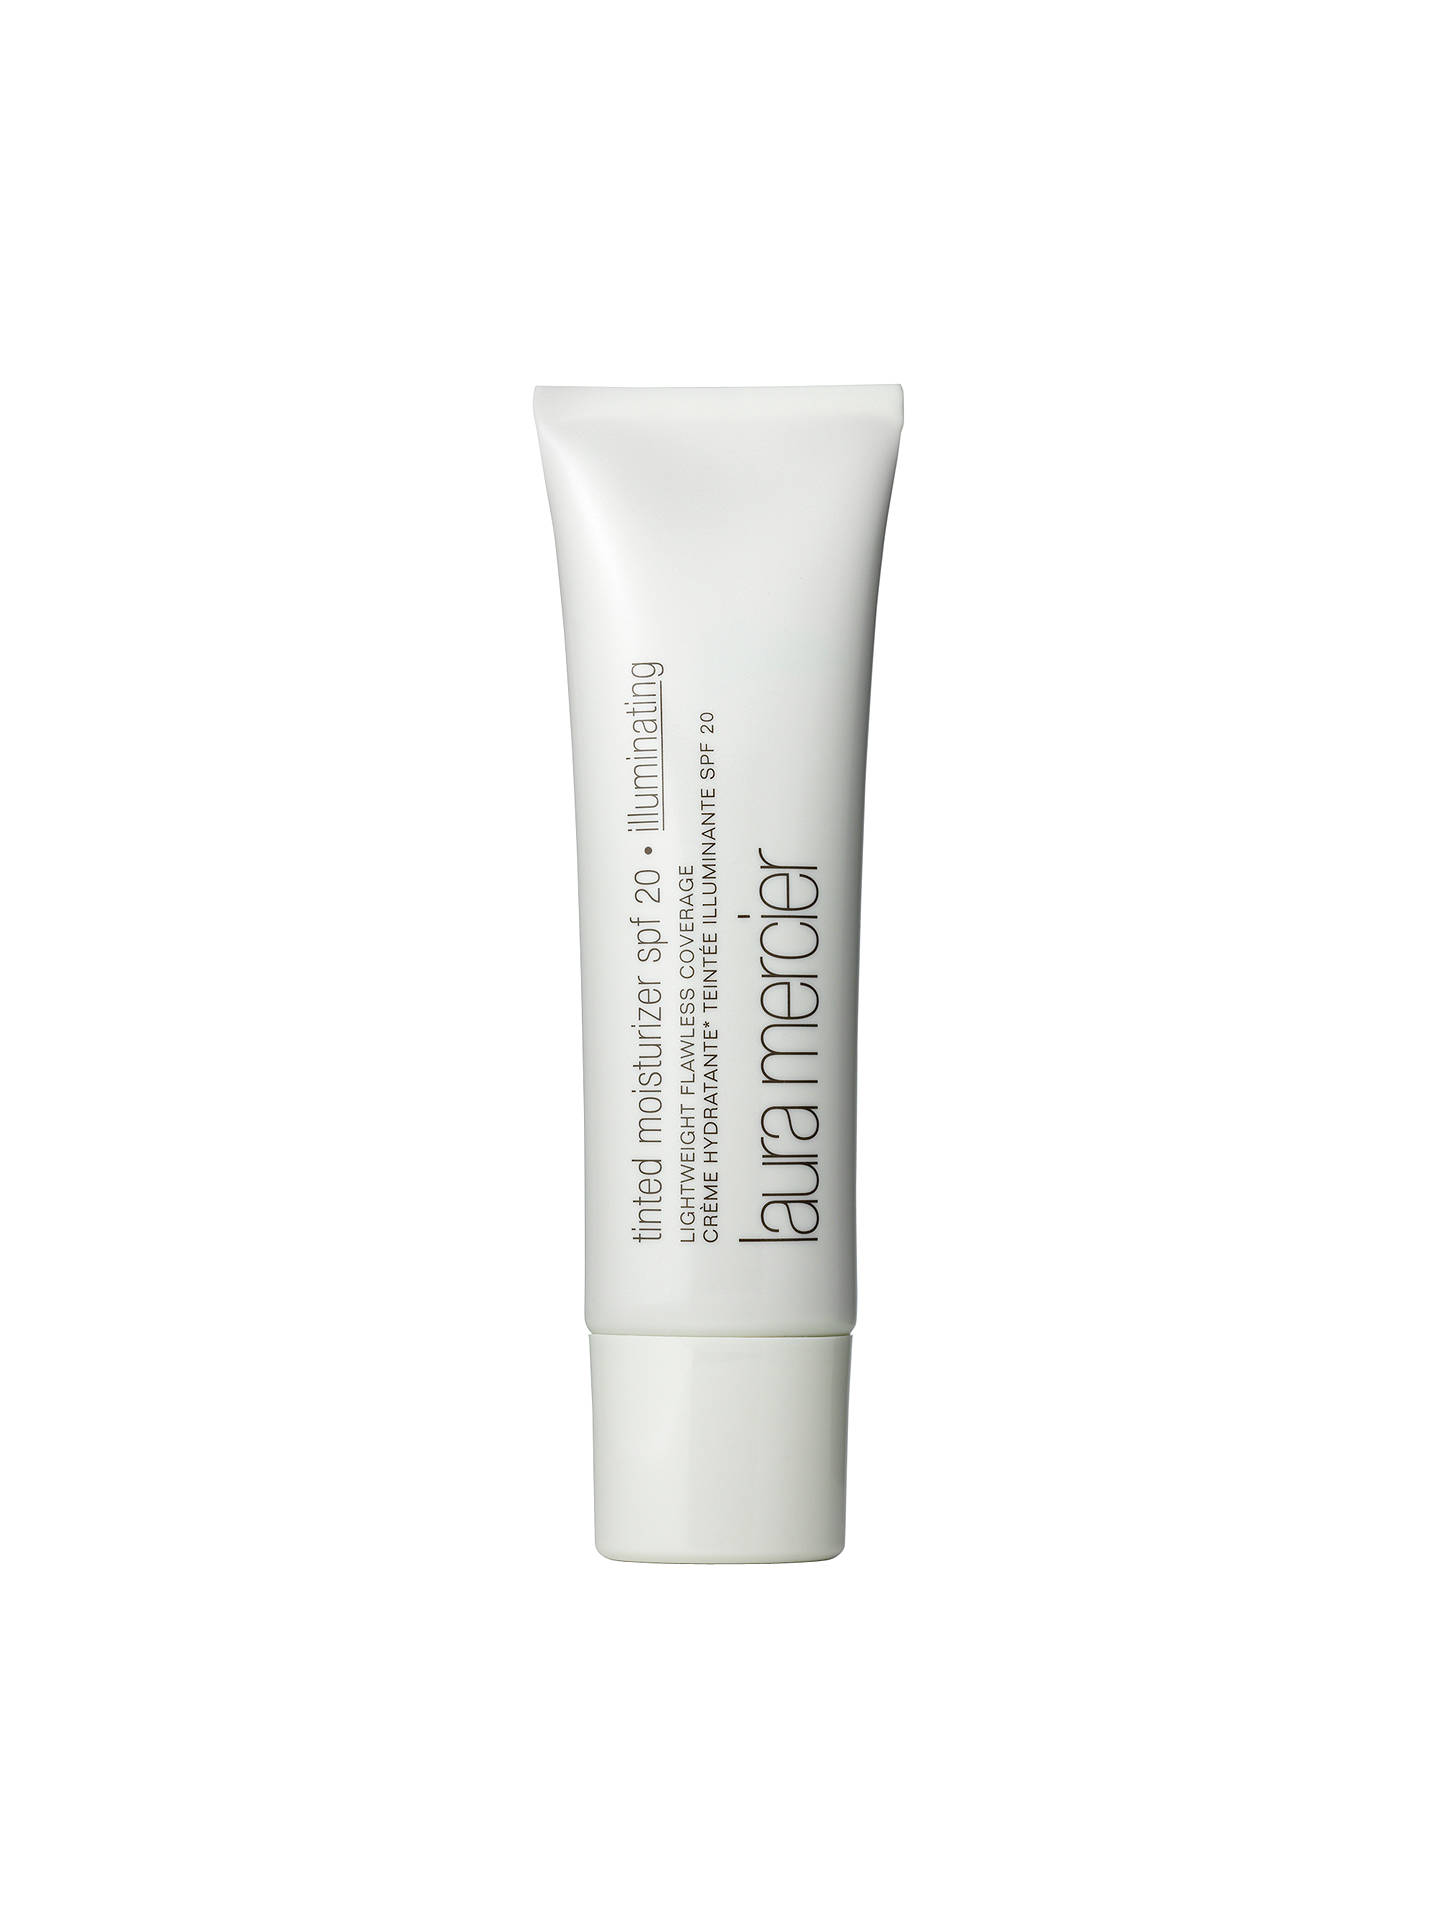 Buy Laura Mercier Illuminating Tinted Moisturiser SPF 20, Natural Radiance Online at johnlewis.com